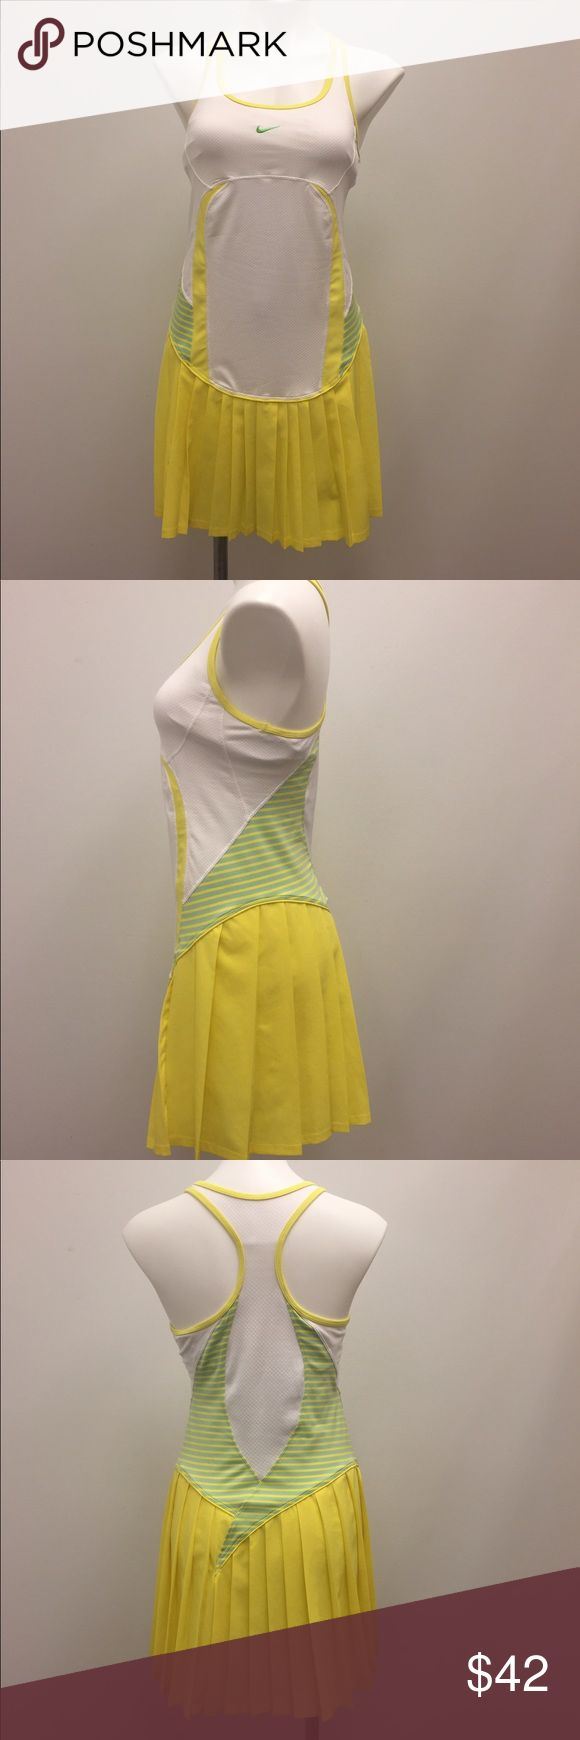 Nike fitdry multicolor athletic Pleated skrt dress Nike fitdry womens white textured dress with yellow pleated skirt, razor back and striped accent detail. It is a size medium and is in very good condition with light wear. It is made of polyester, nylon, and spandex. It features a built in non-padded shelf like bra area. It measures 33.5 inches from top of shoulder seam to bottom hem, and 15 inches from armpit to armpit. Nike Dresses